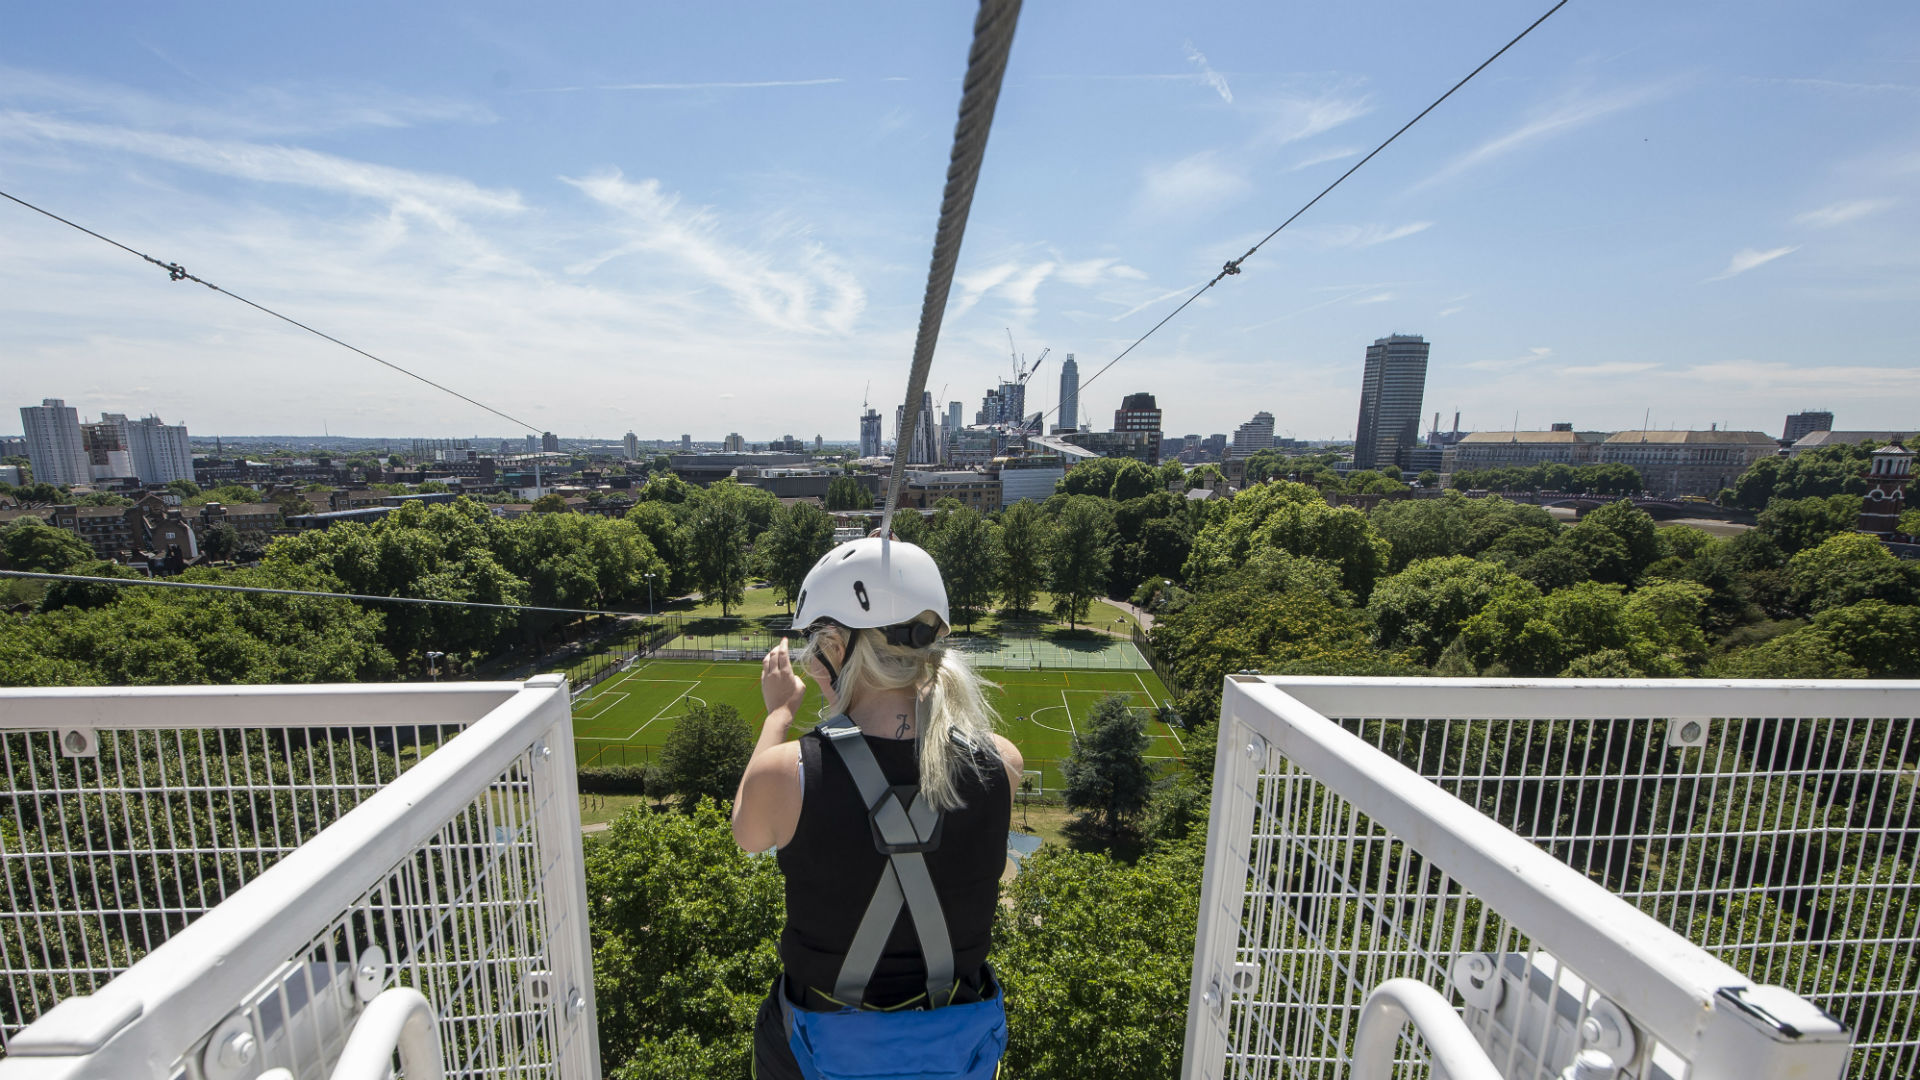 A woman prepares to whizz down one of the zip wires at Zip Now London